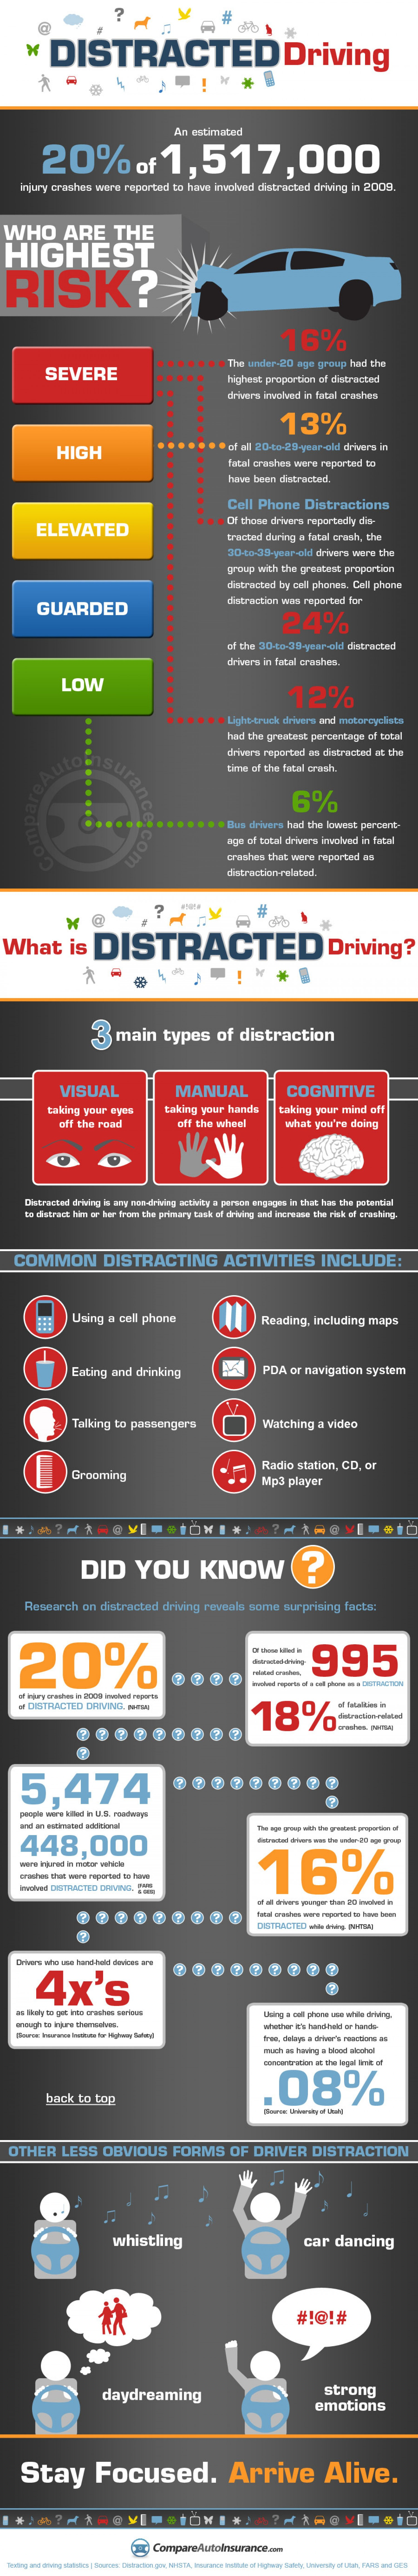 Distracted Driving Statistics Infographic Distracted